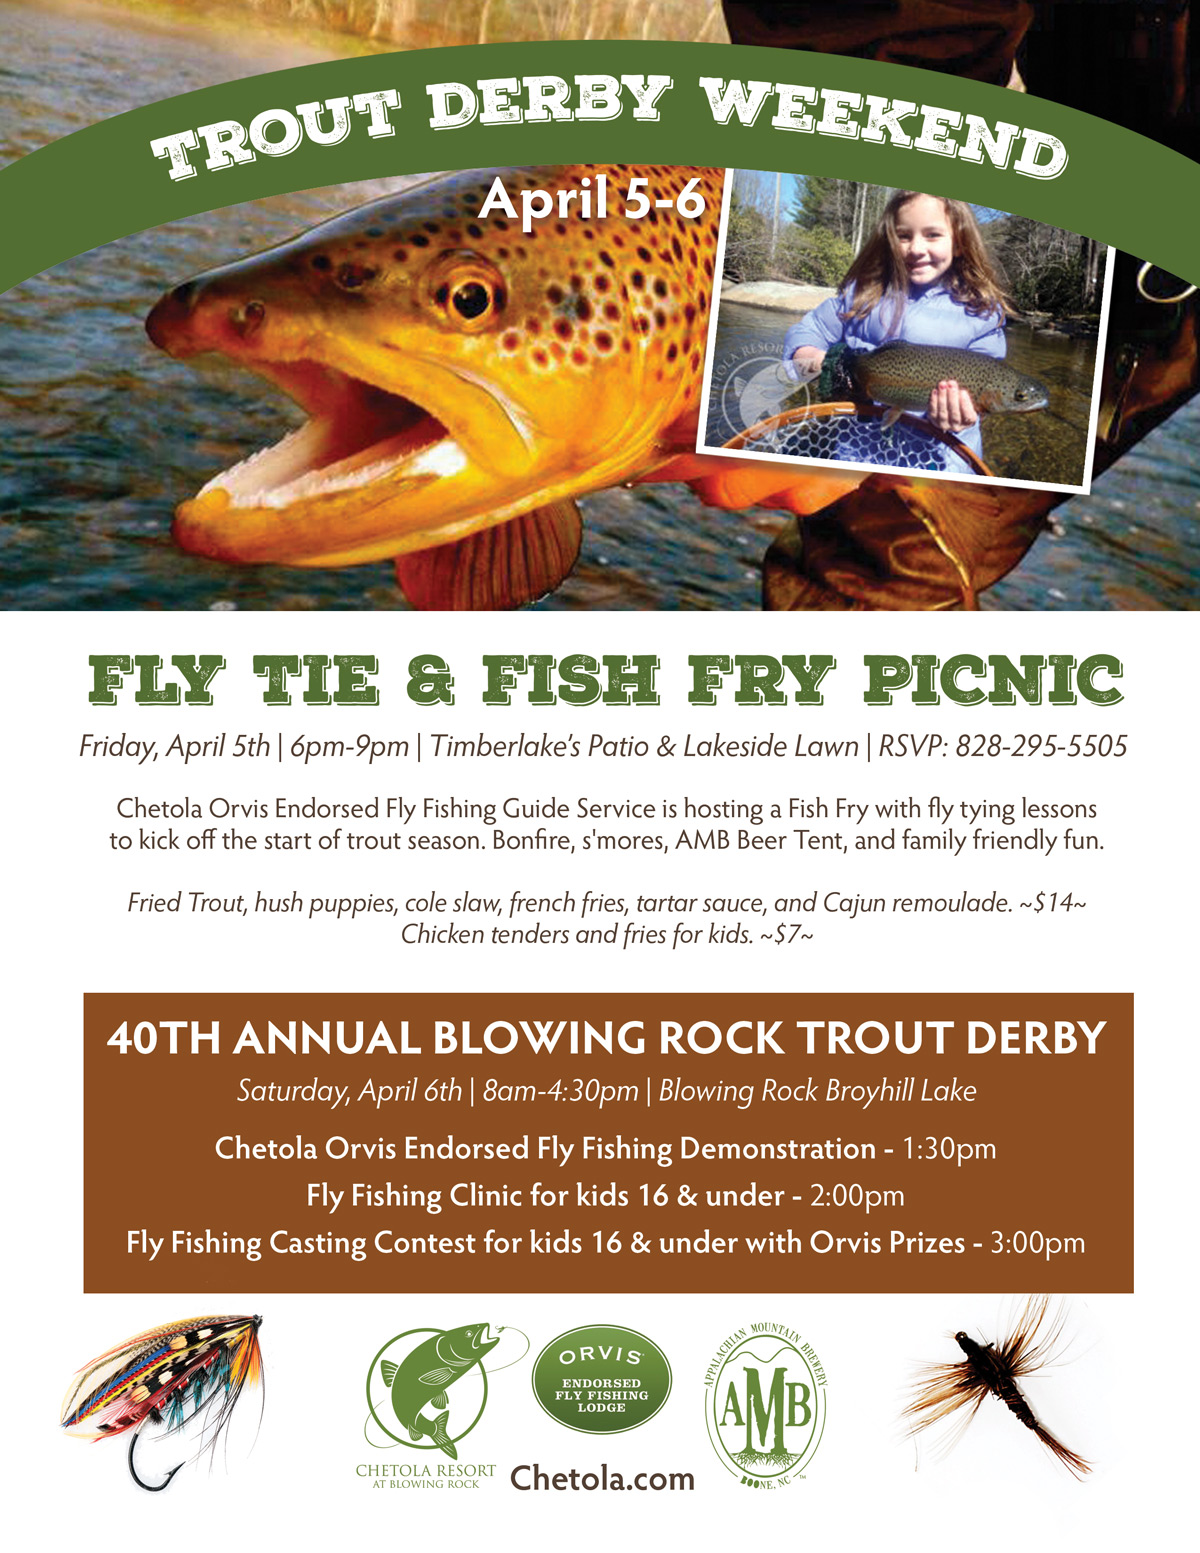 fly tie and fish fry